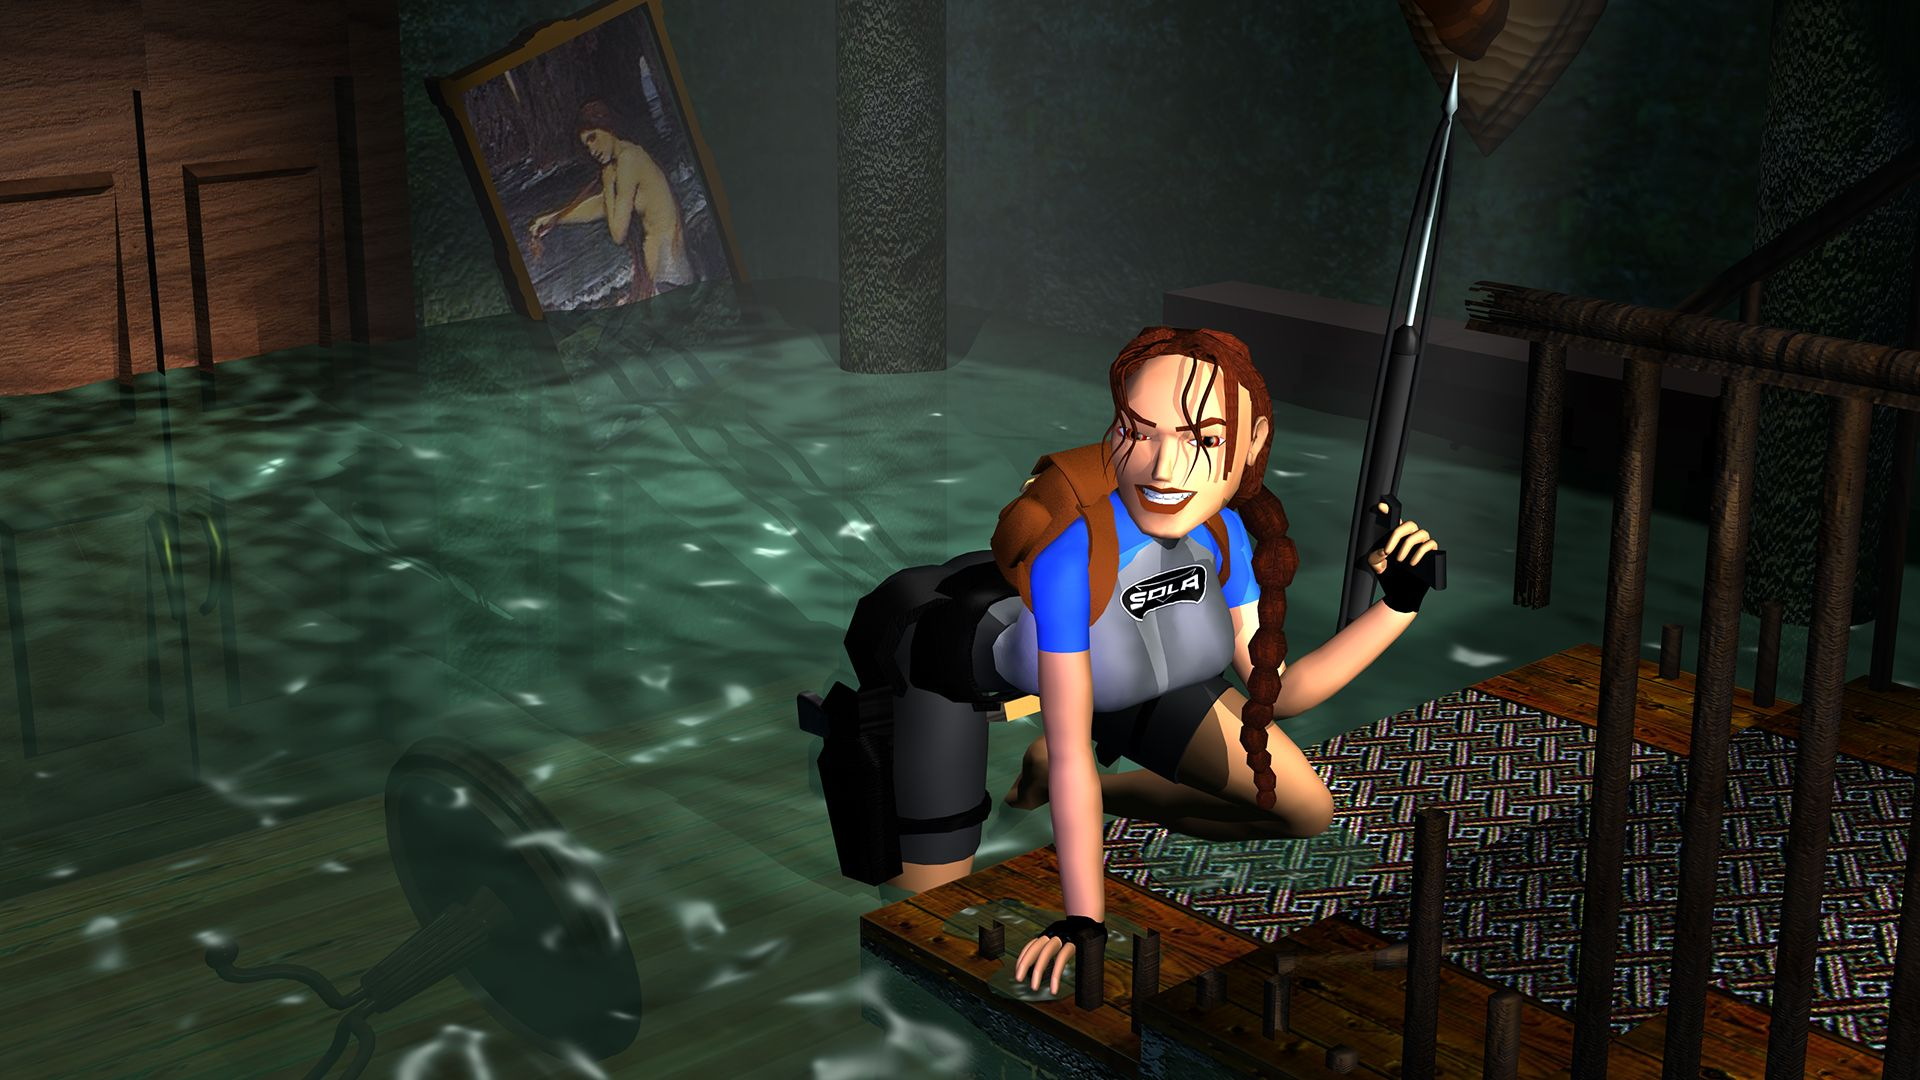 Tomb Raider 2 Wallpapers Top Free Tomb Raider 2 Backgrounds